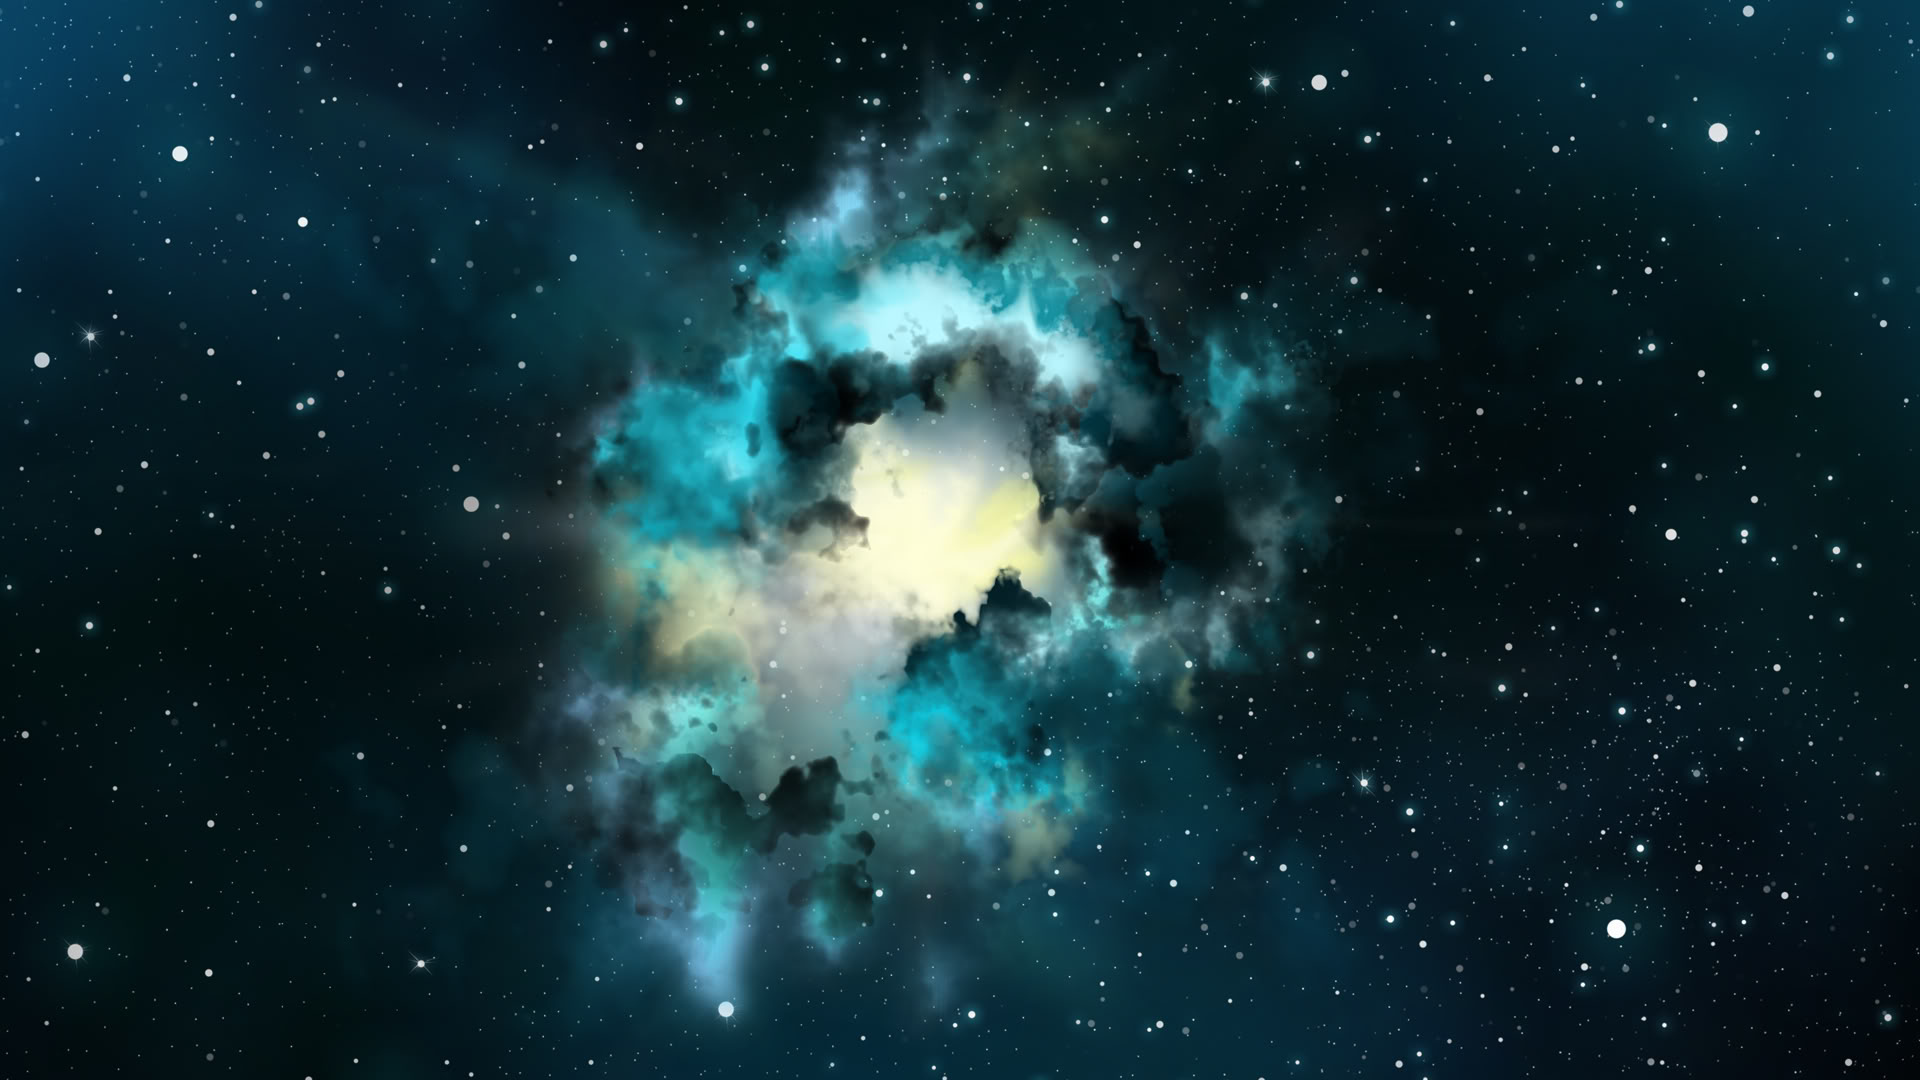 space wallpapers ps3 wallpaper bright 1920x1080 1920x1080